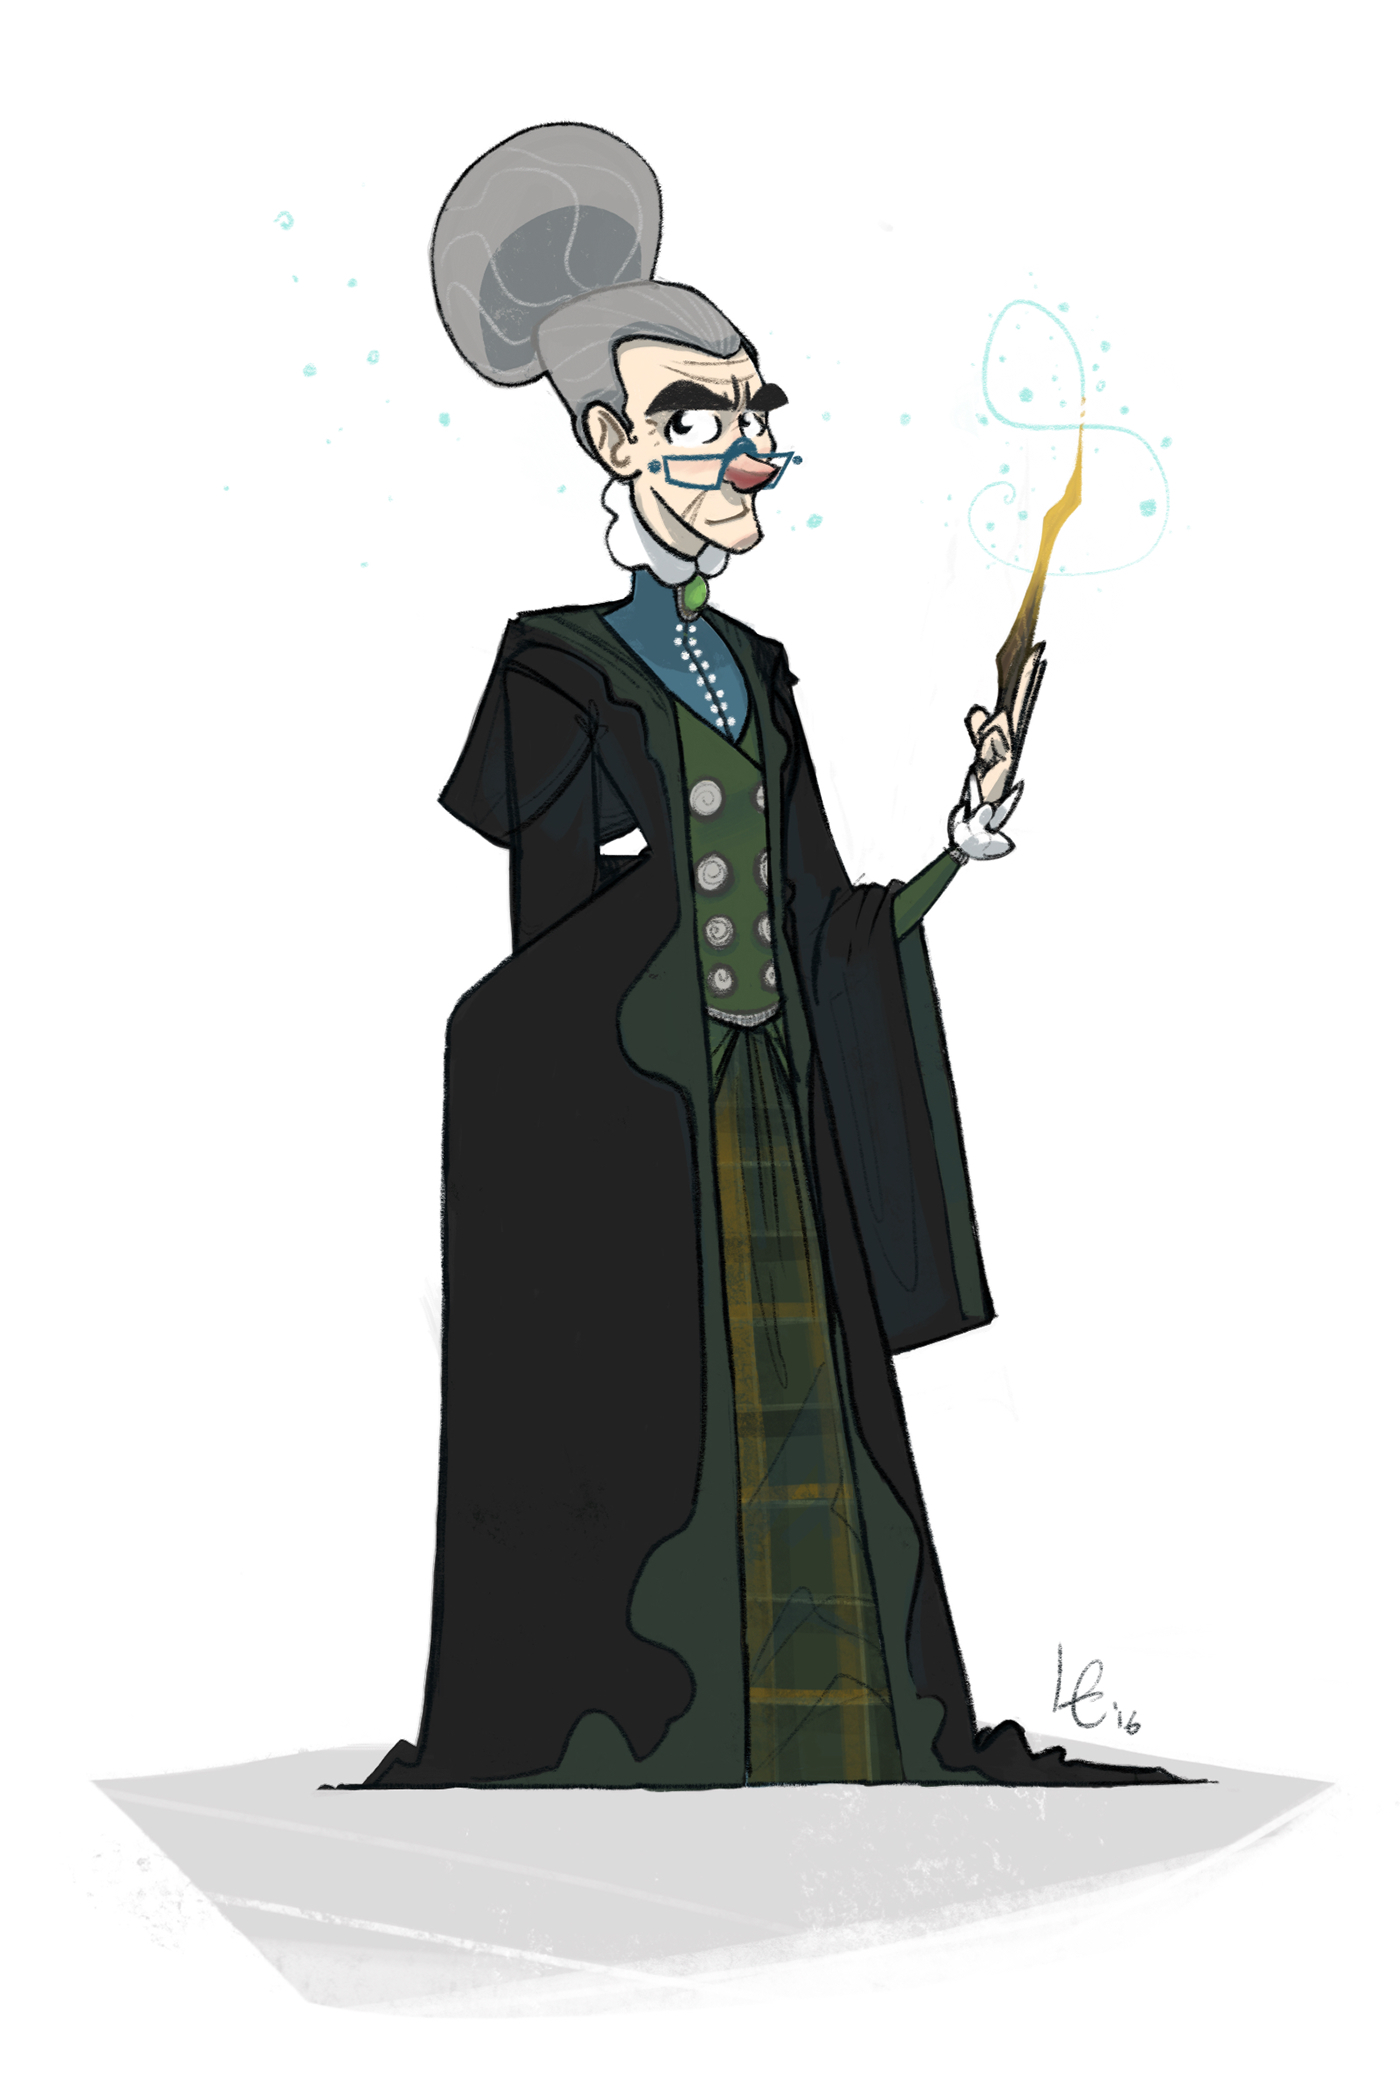 Harry Potter Character Design Challenge Facebook : Harry potter character design challenge on behance